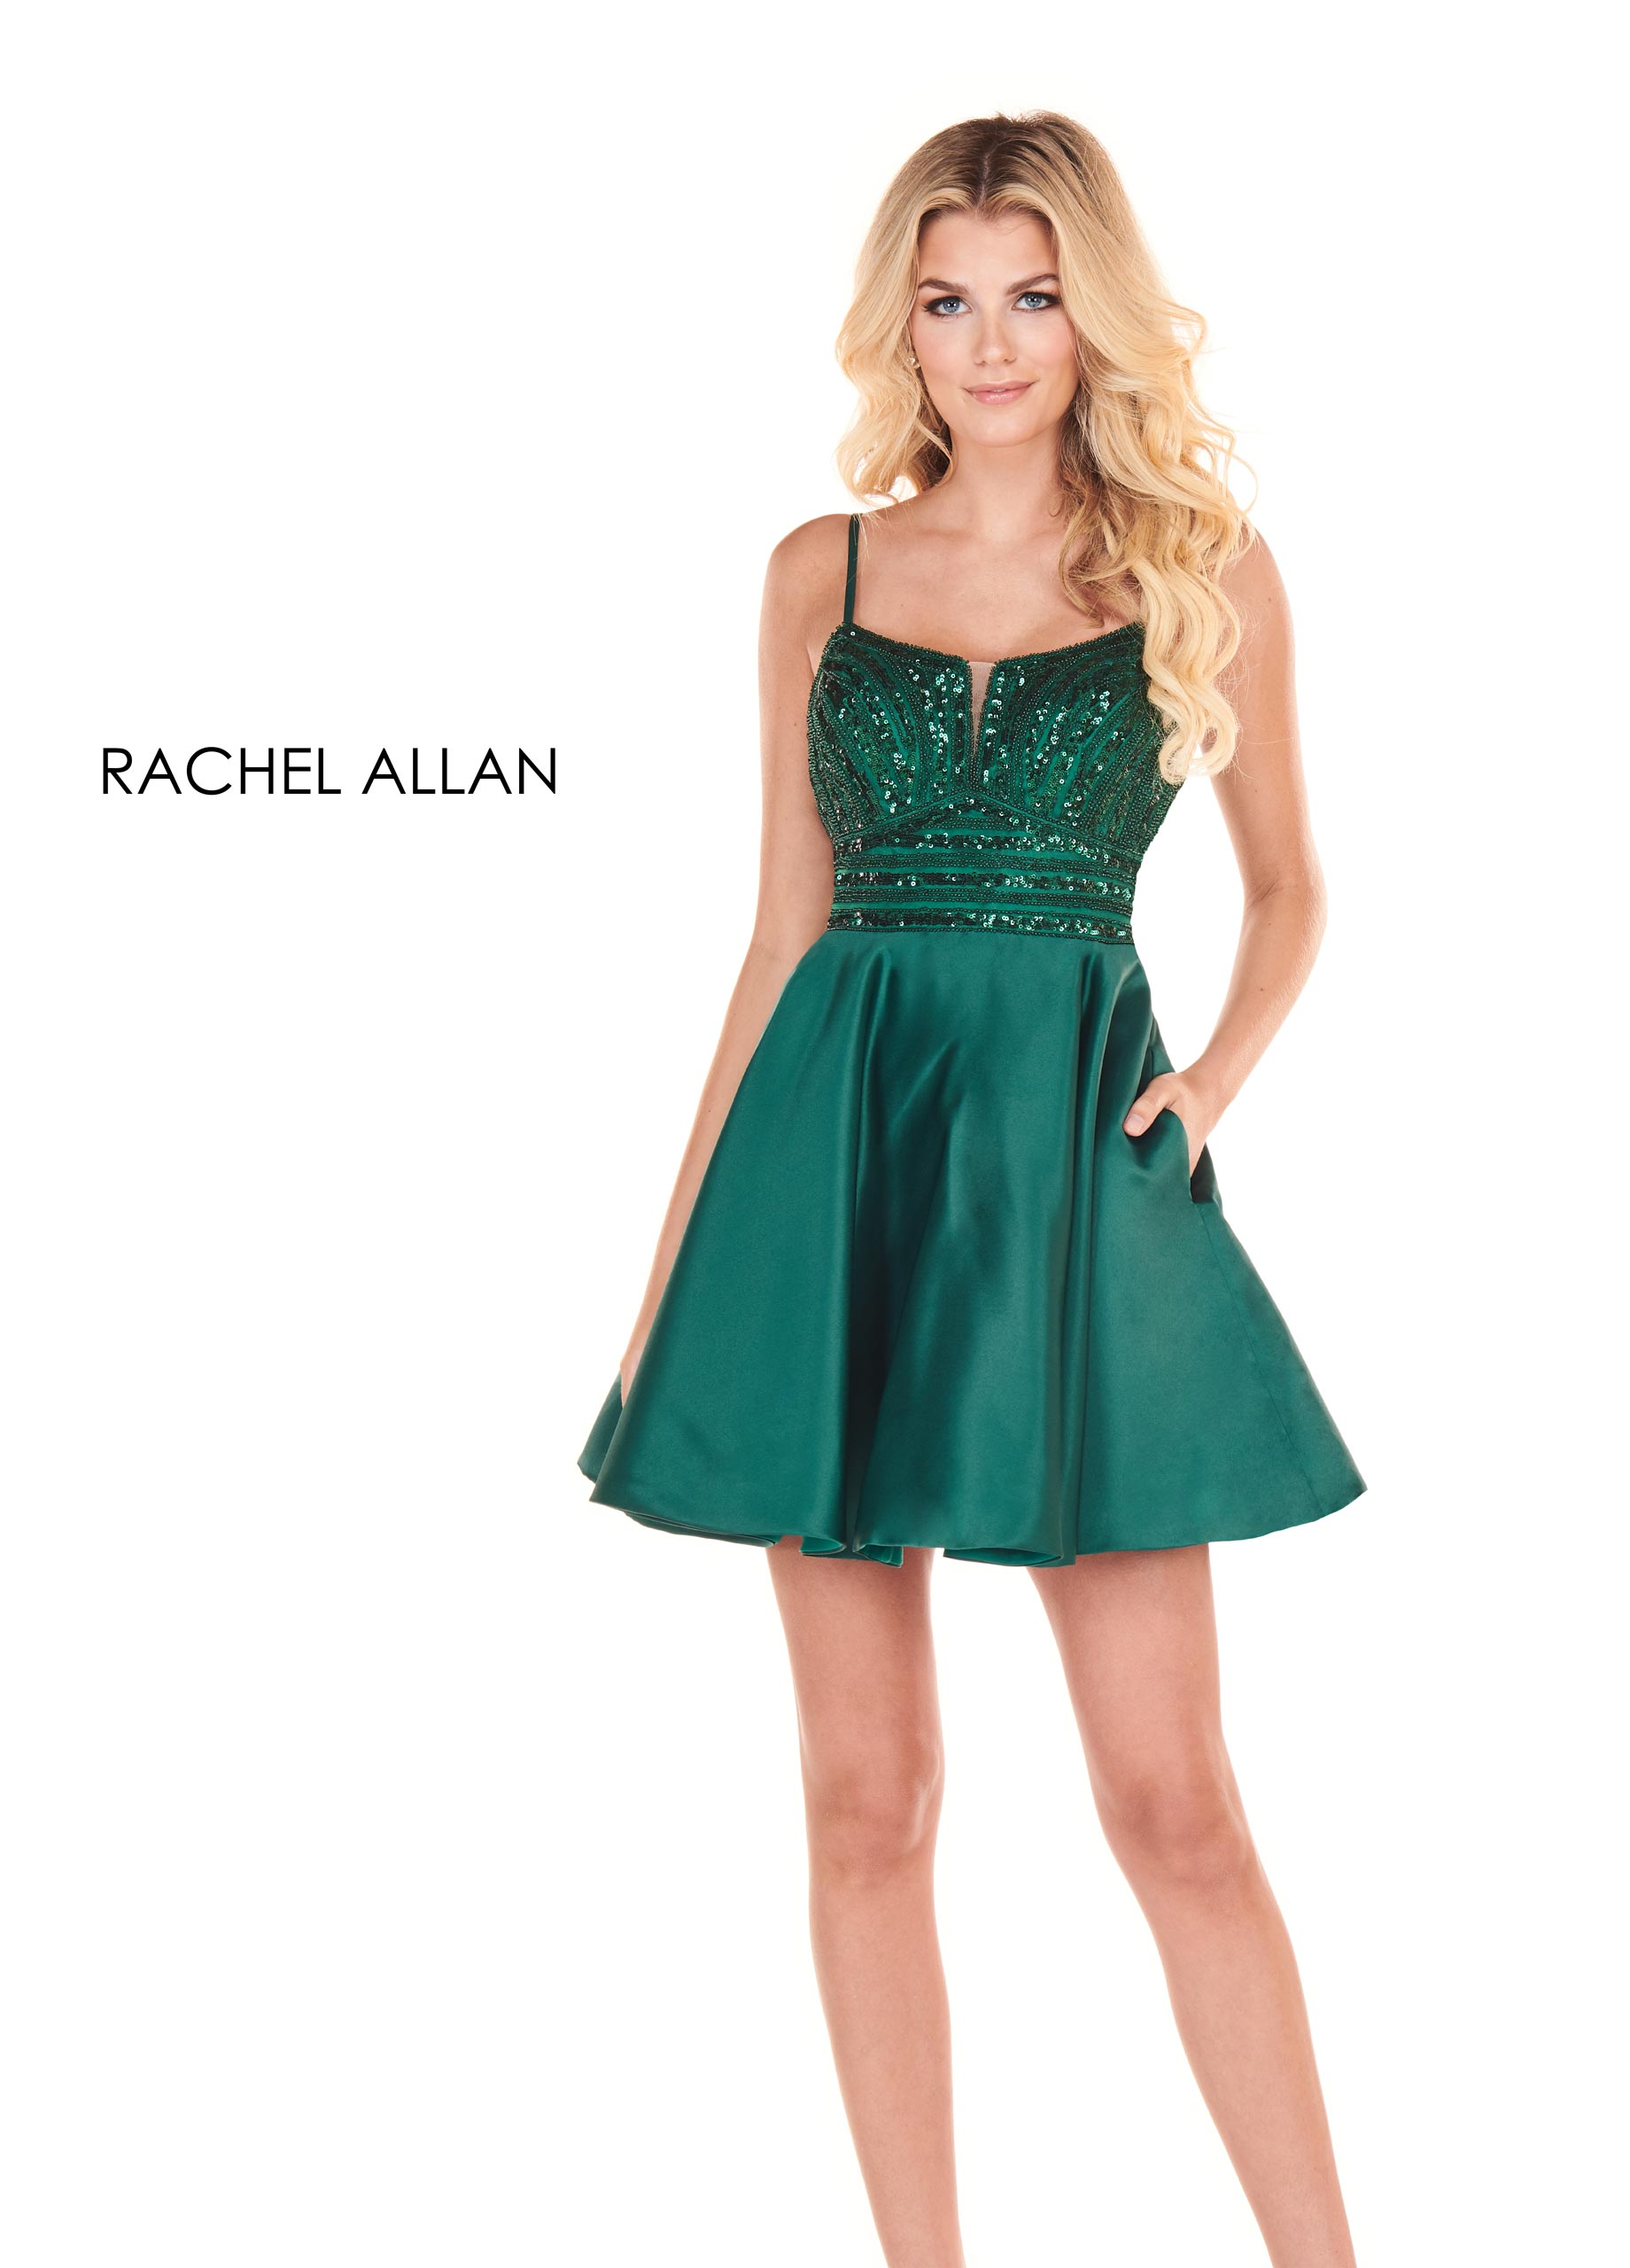 Scoop Neck A-Line Homecoming Dresses in Green Color